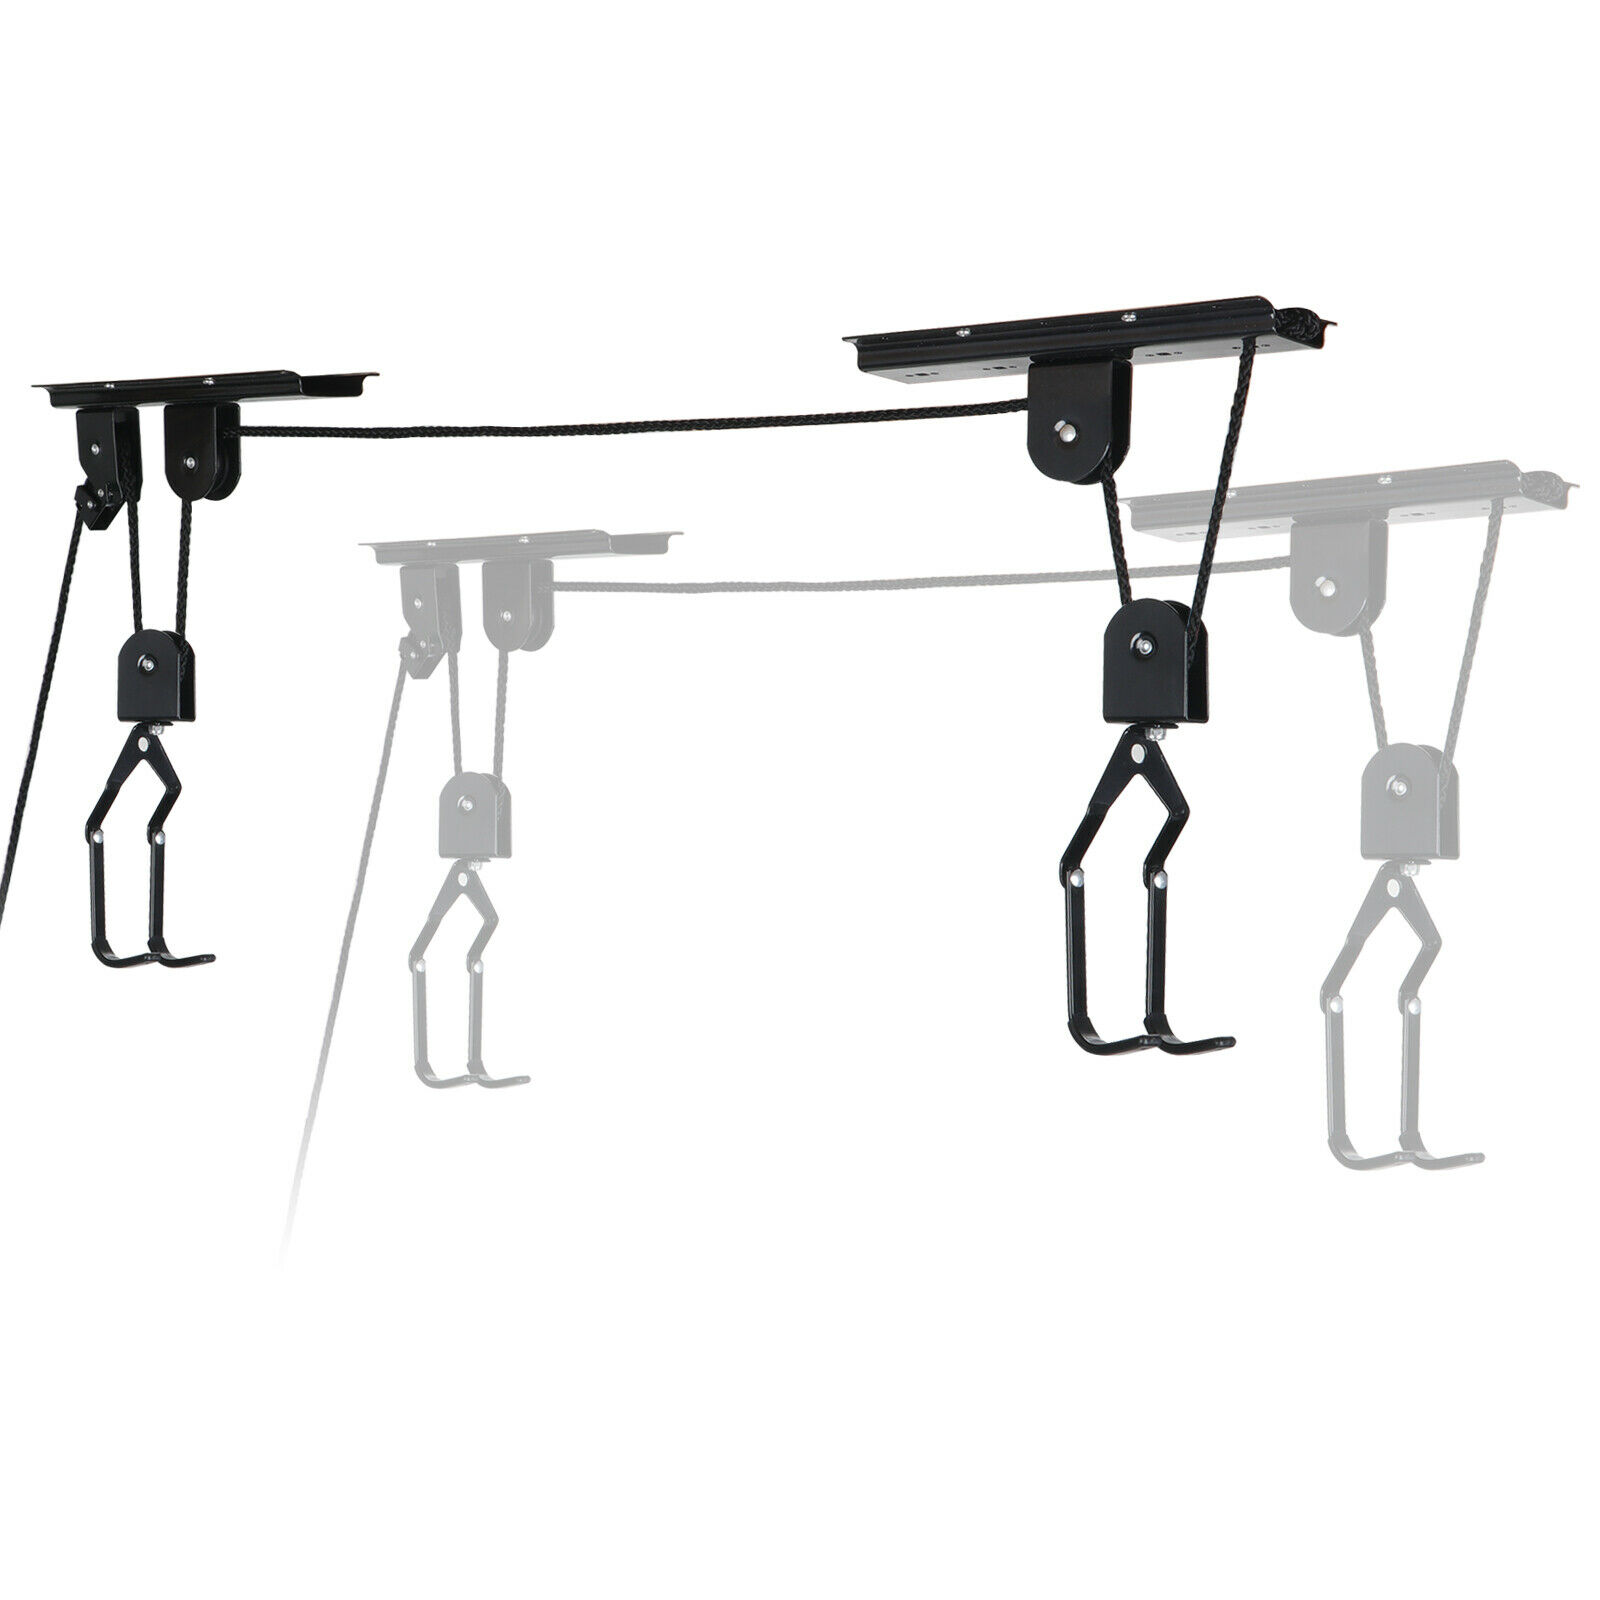 Details about  /Bike Bicycle Lift Ceiling Mounted Hoist Storage Safety Garage Hanger Pulley Rack